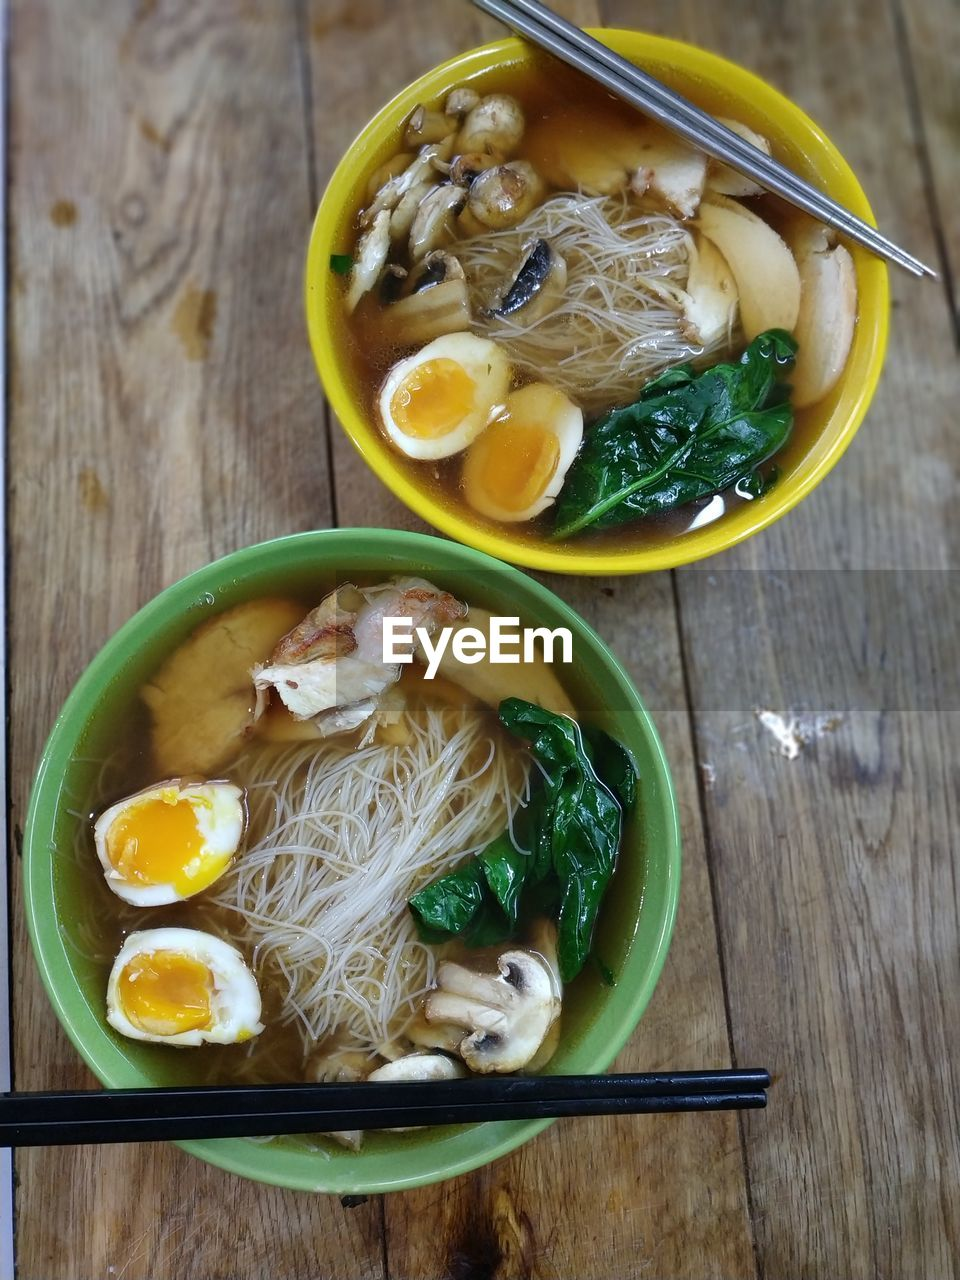 HIGH ANGLE VIEW OF FOOD IN BOWL